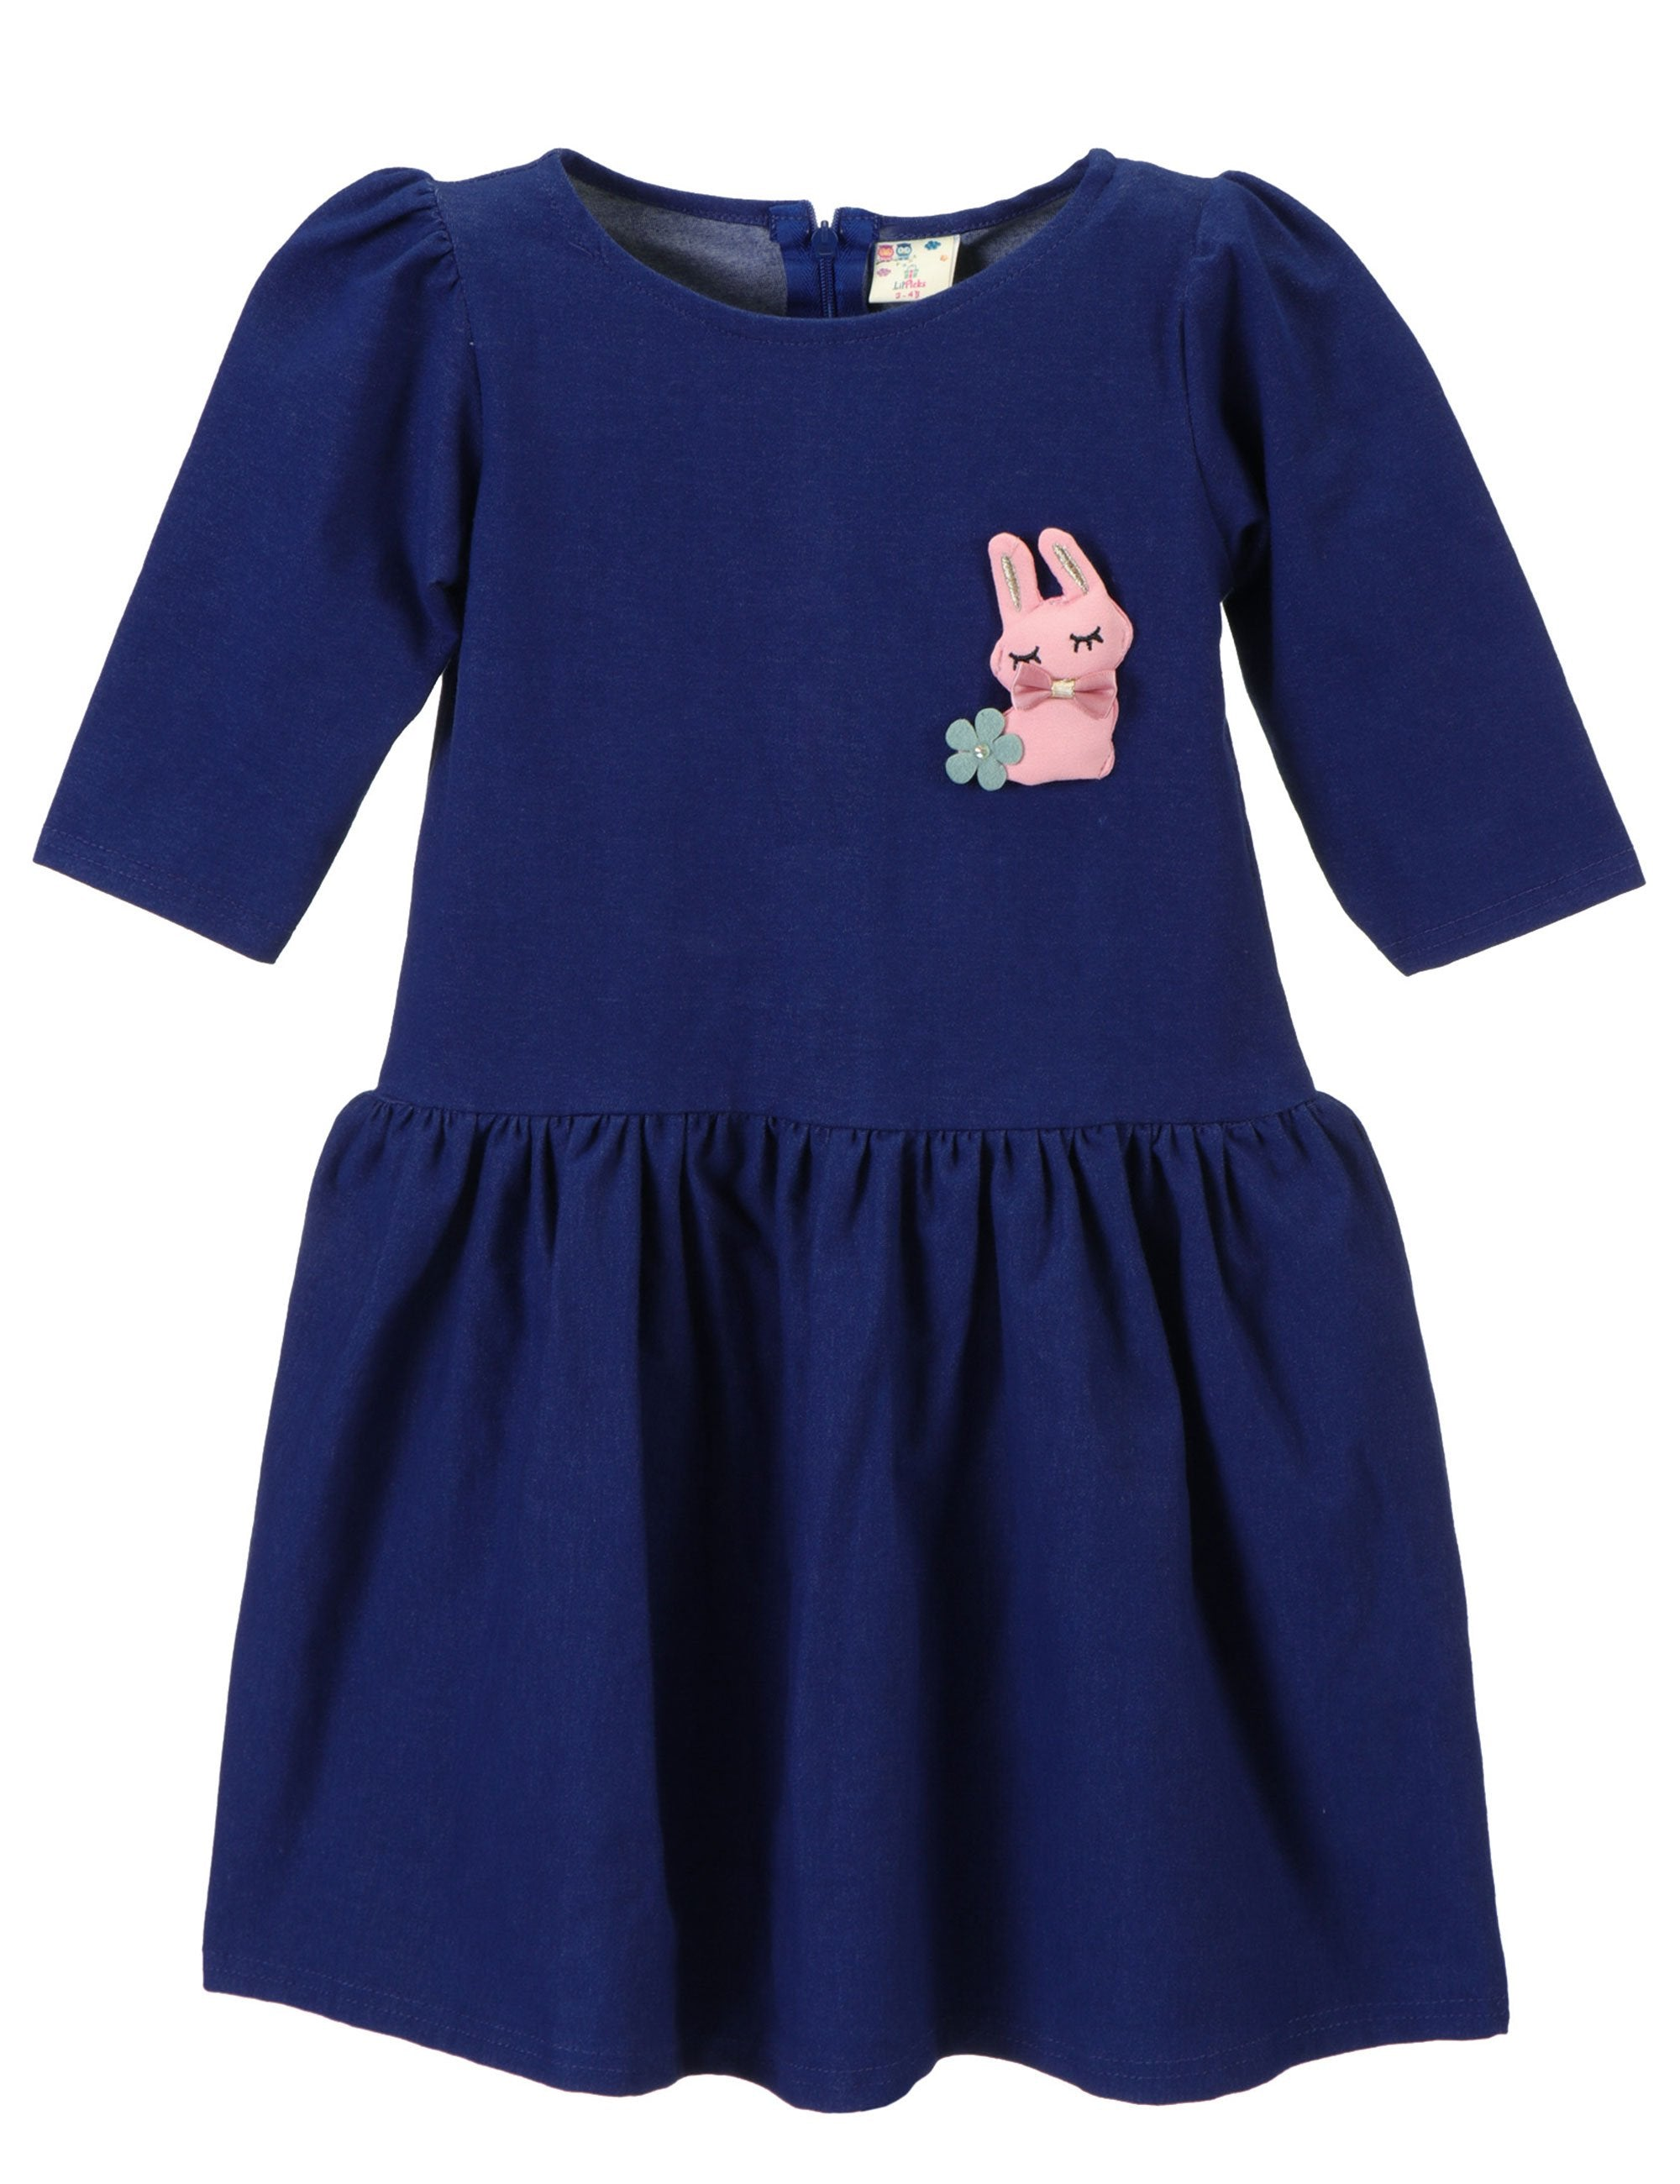 Denim Blue Rabbit Patch Dress for Girls